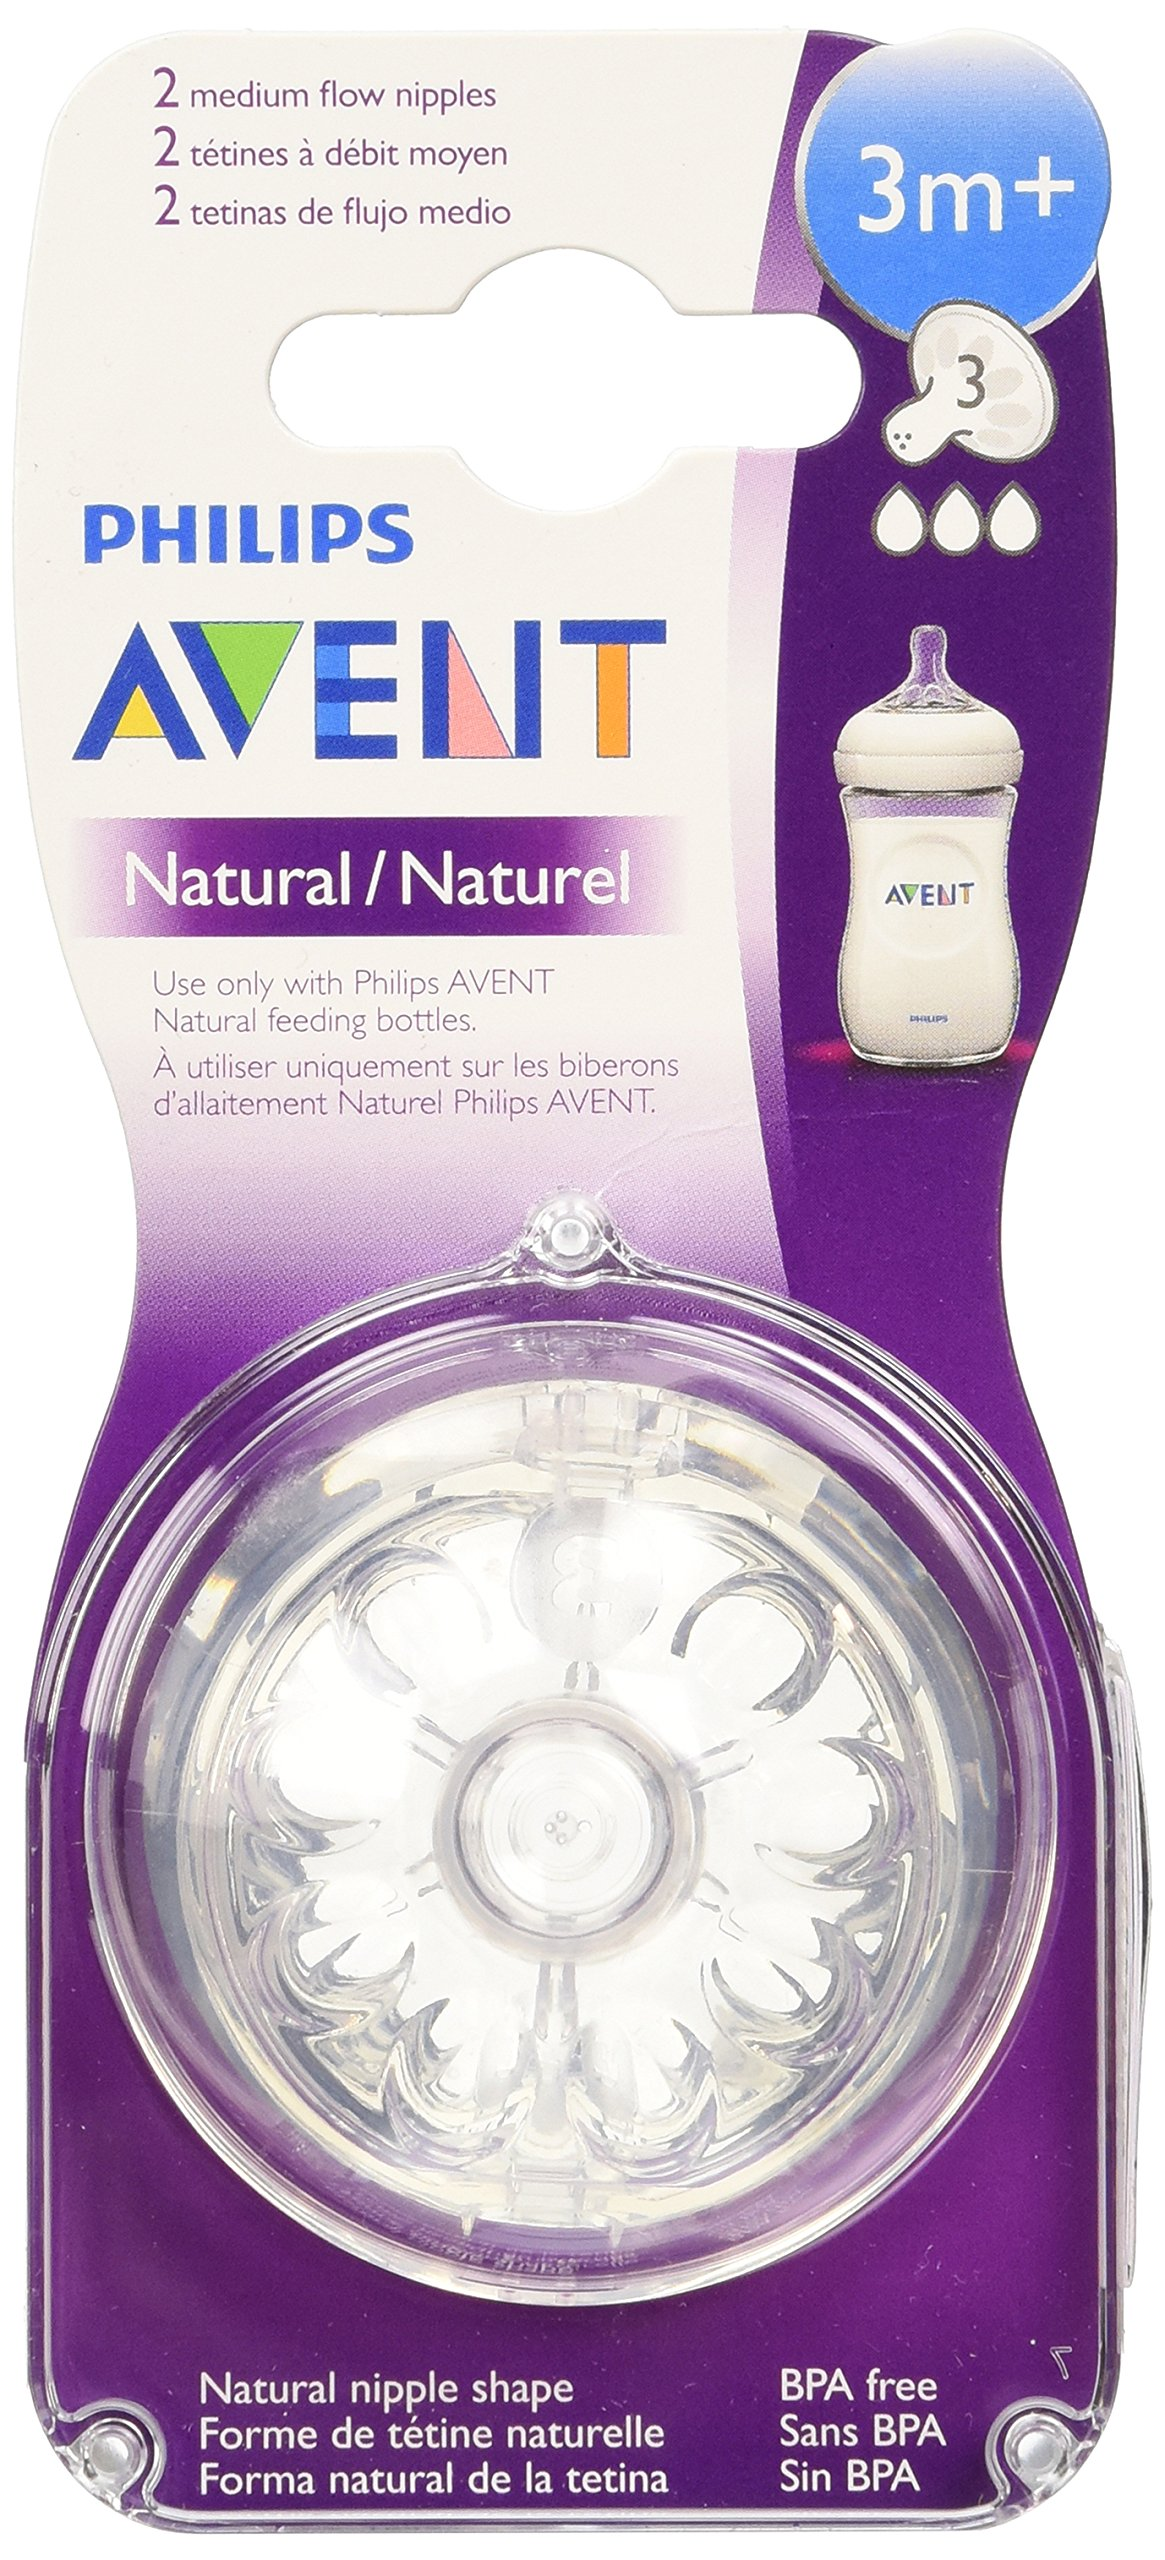 Philips Avent BPA Free Natural Medium Flow Nipples, 3 month+, 2 Count by Philips AVENT